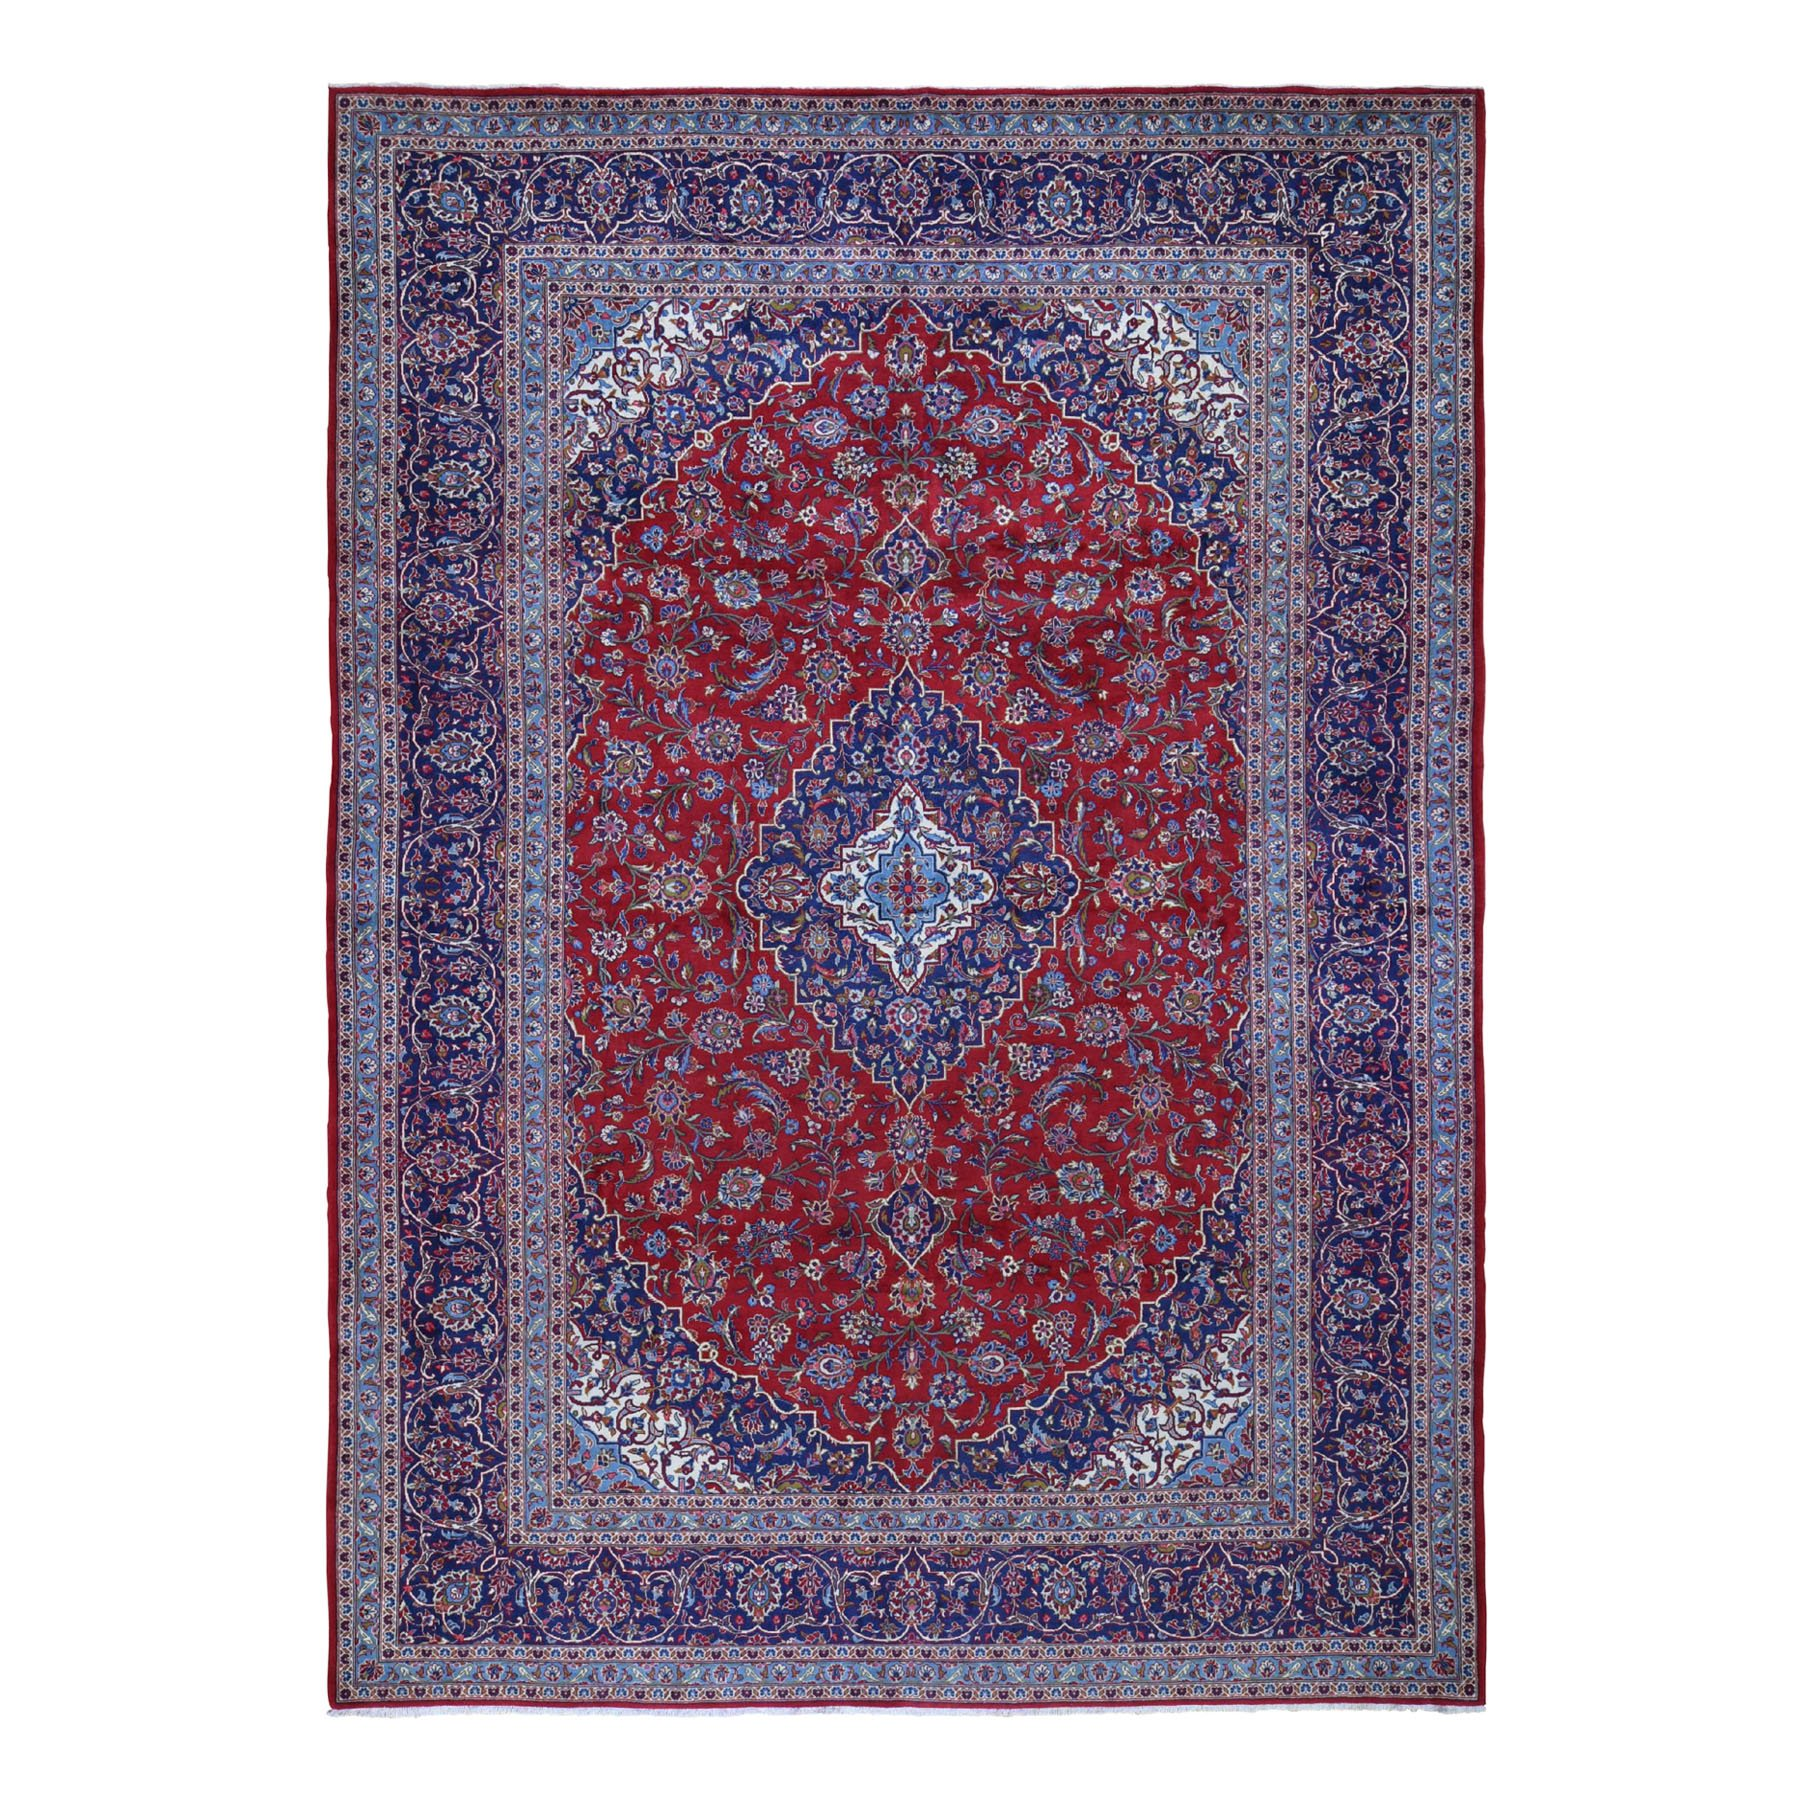 "9'8""x13'6"" Red Semi Antique Persian Kashan Full Pile Pure Wool Hand Knotted Oriental Rug"